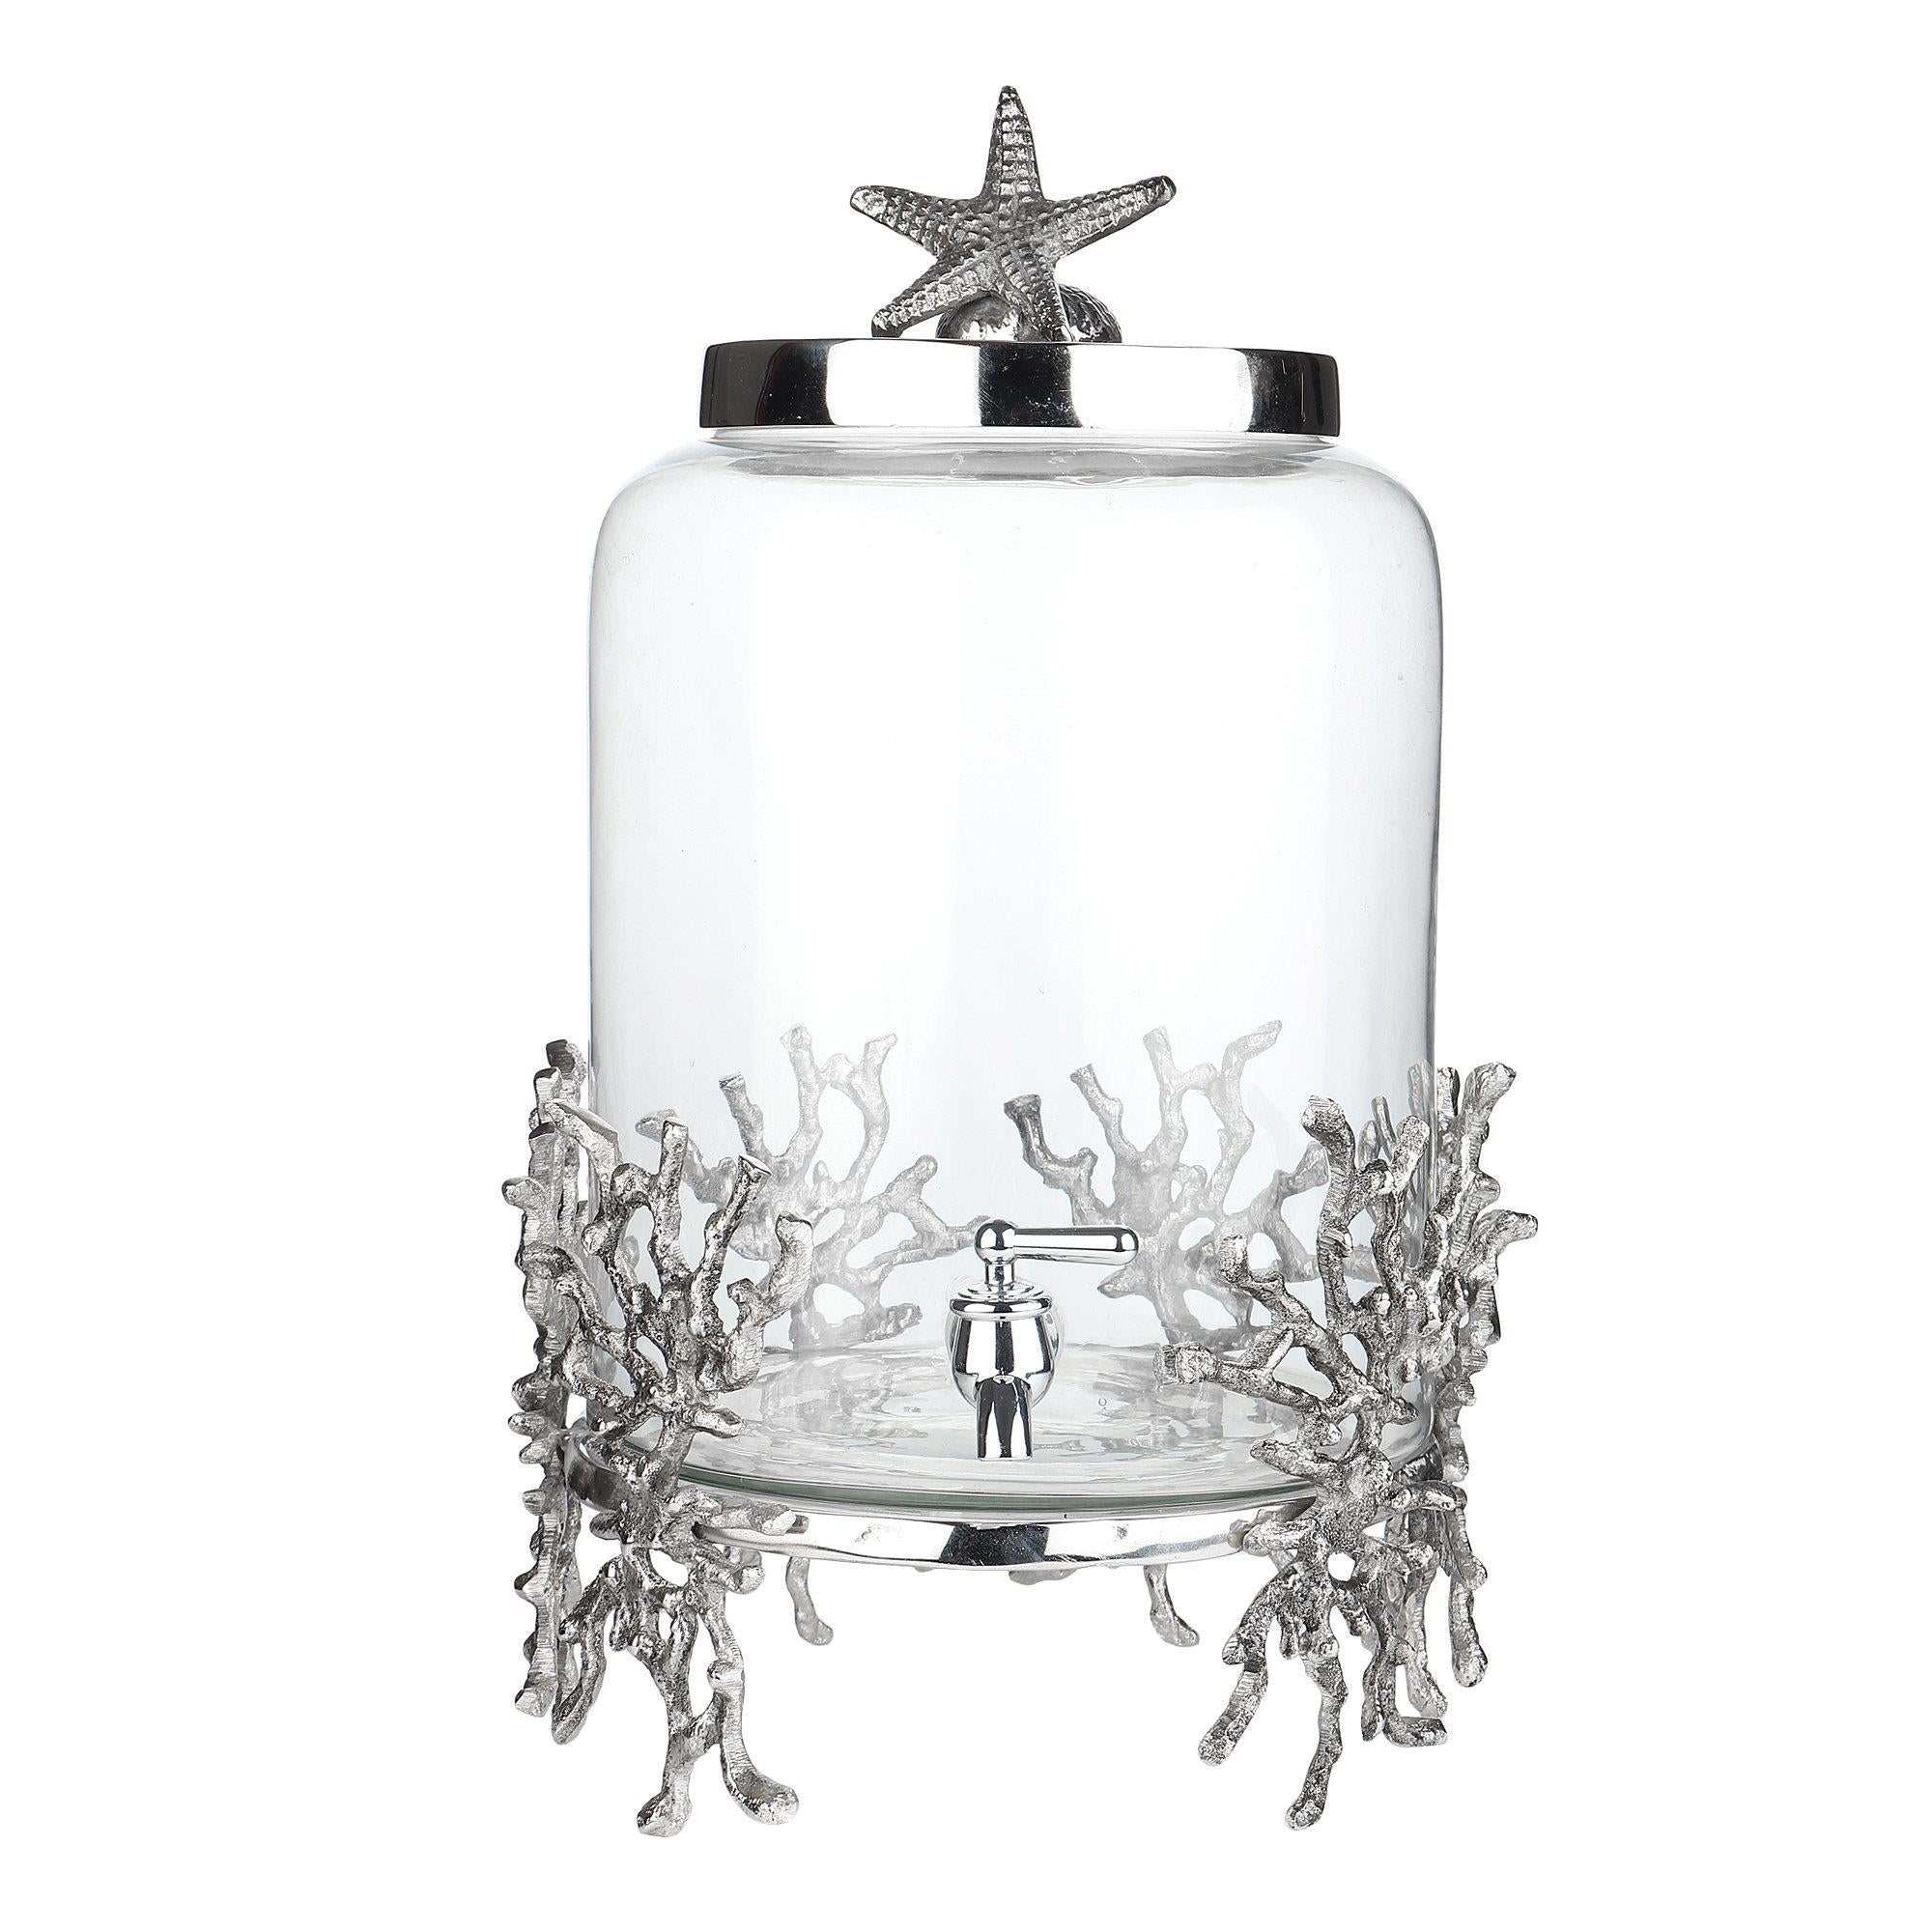 Decorative Beverage Dispenser